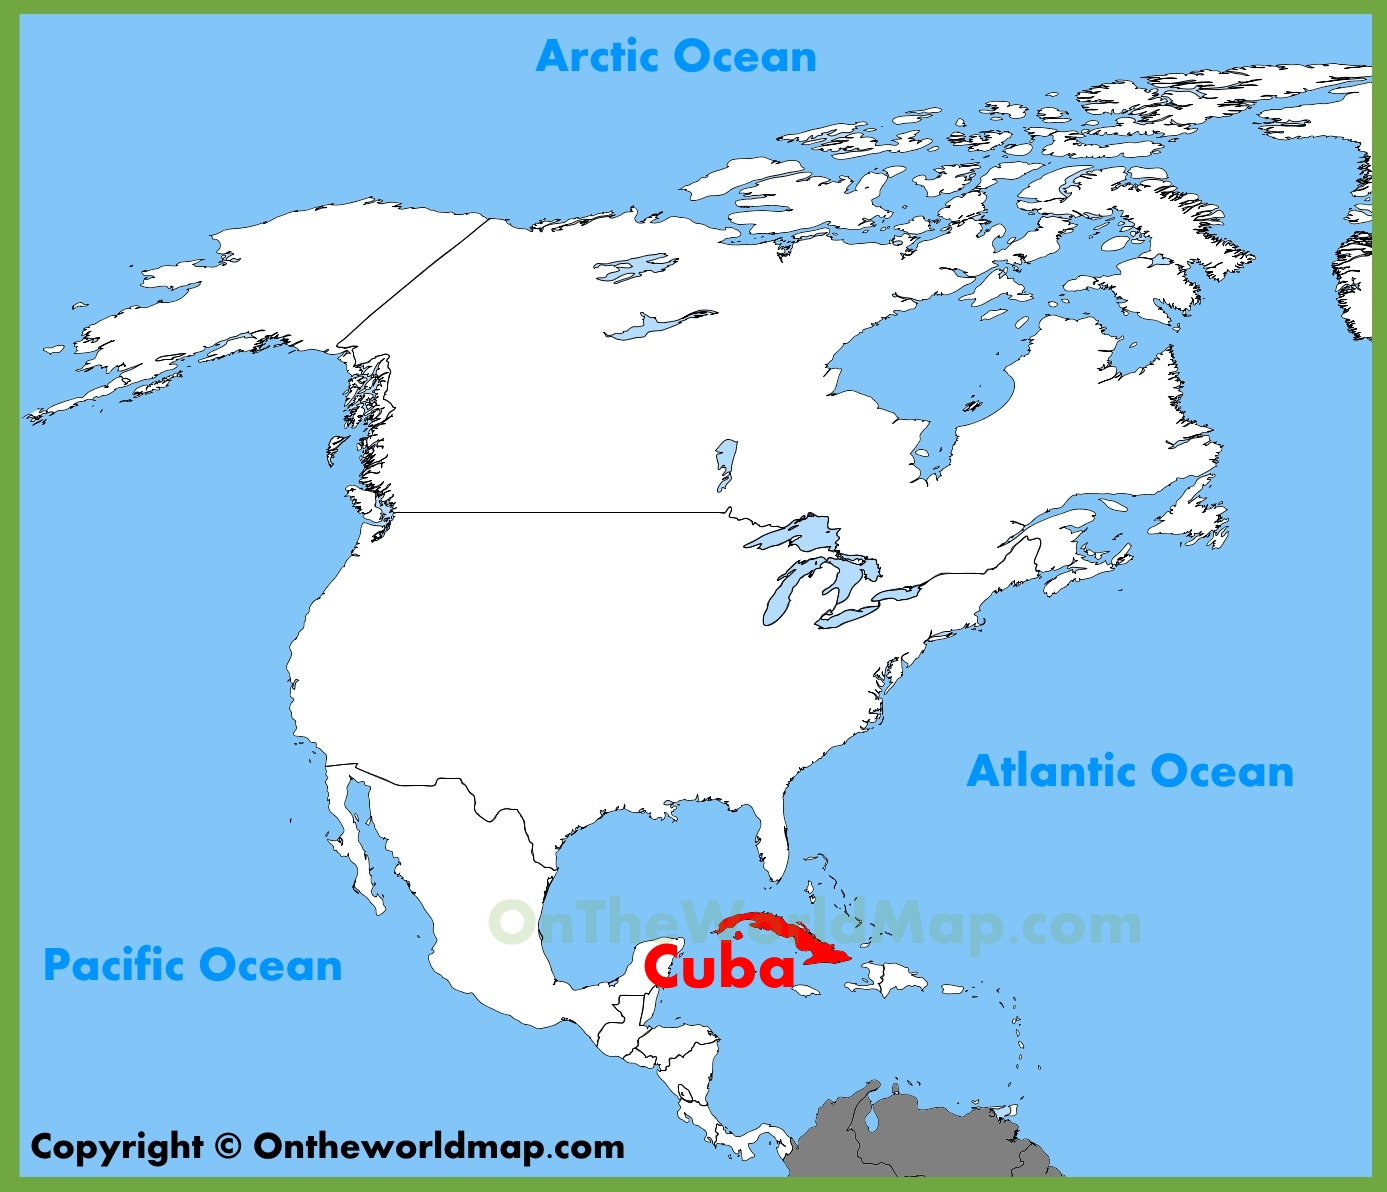 Cuba location on the North America map